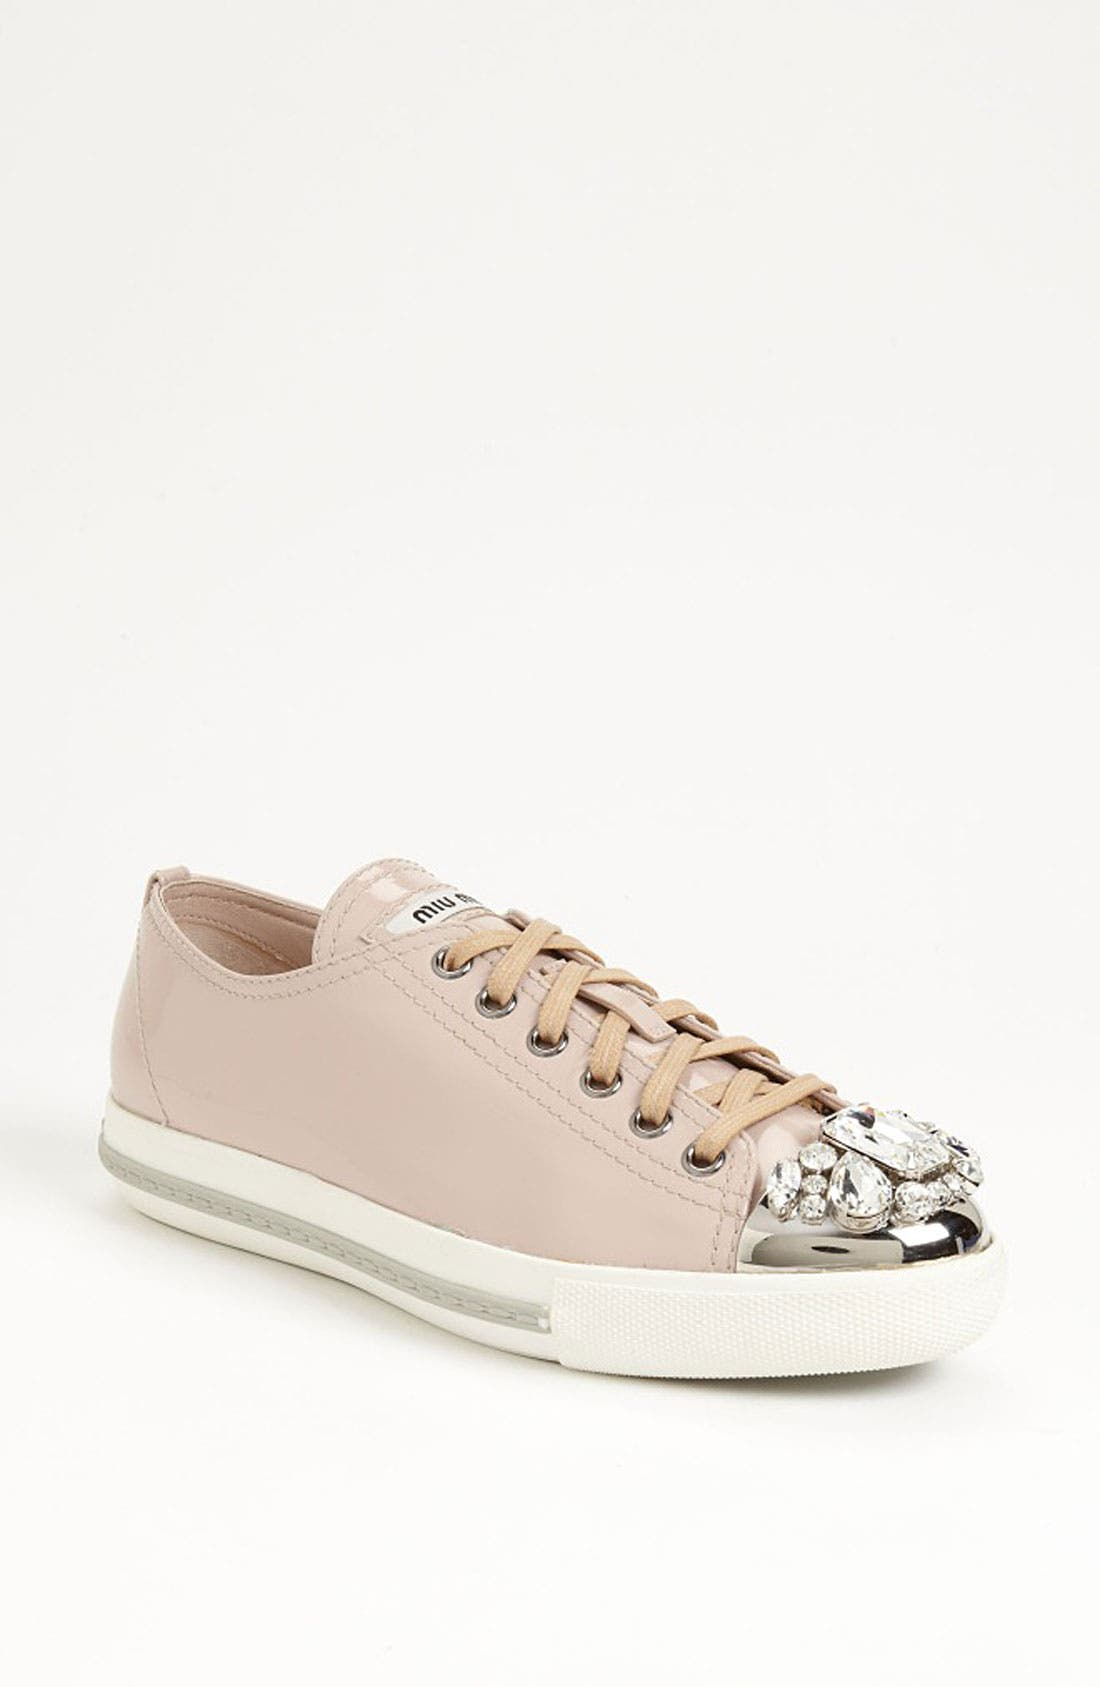 Alternate Image 1 Selected - Miu Miu Crystal Cap Toe Sneaker